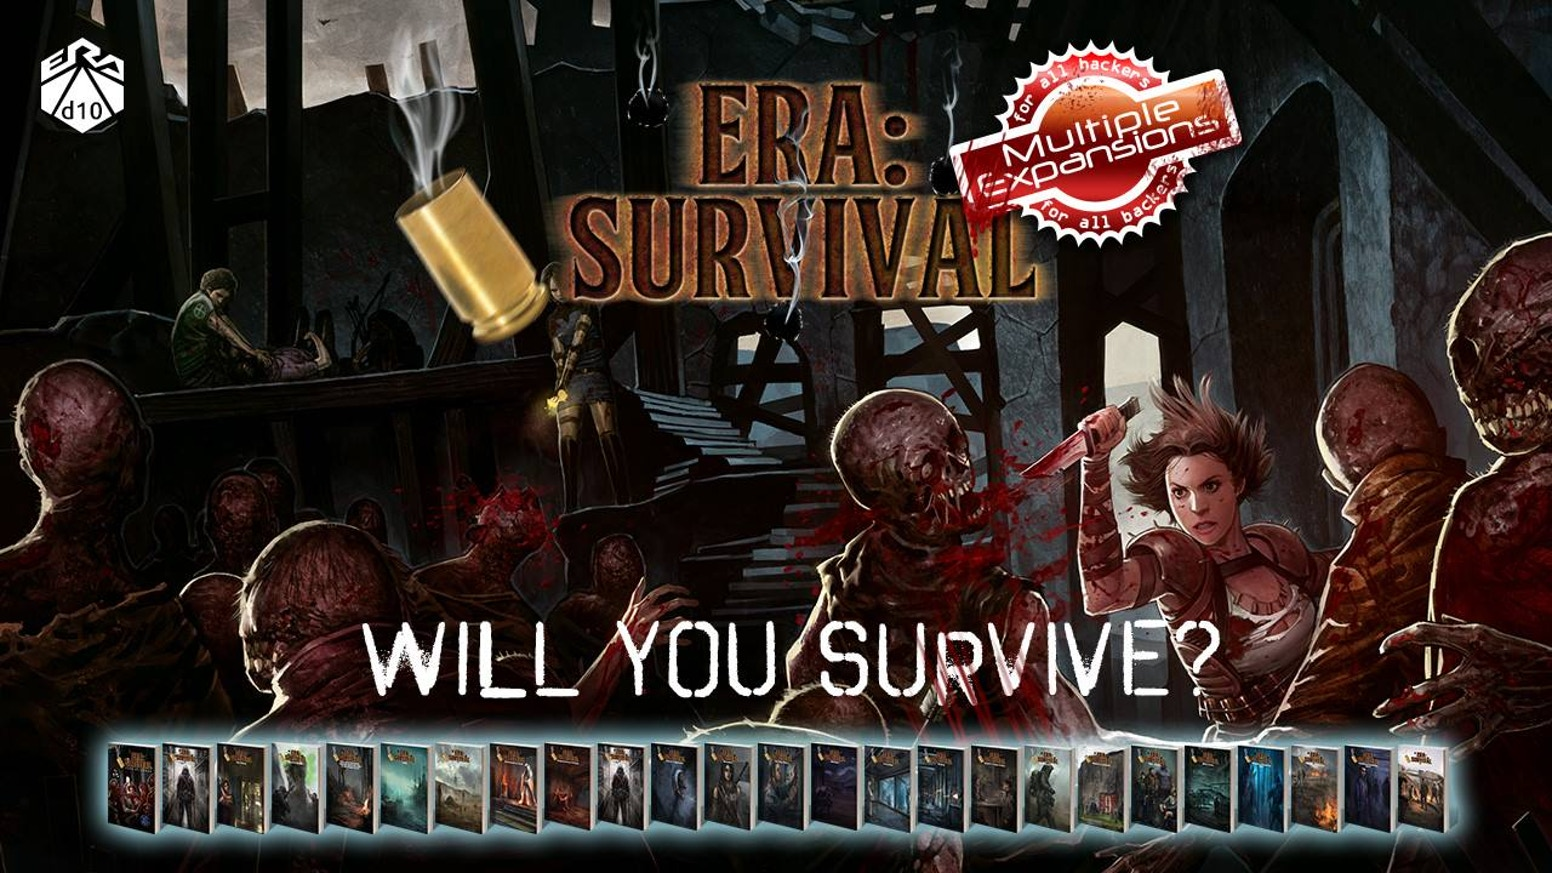 The critically acclaimed Survival Horror RPG returns to Kickstarter with expansions, as well as a £1 Rulebook Primer to try the game!